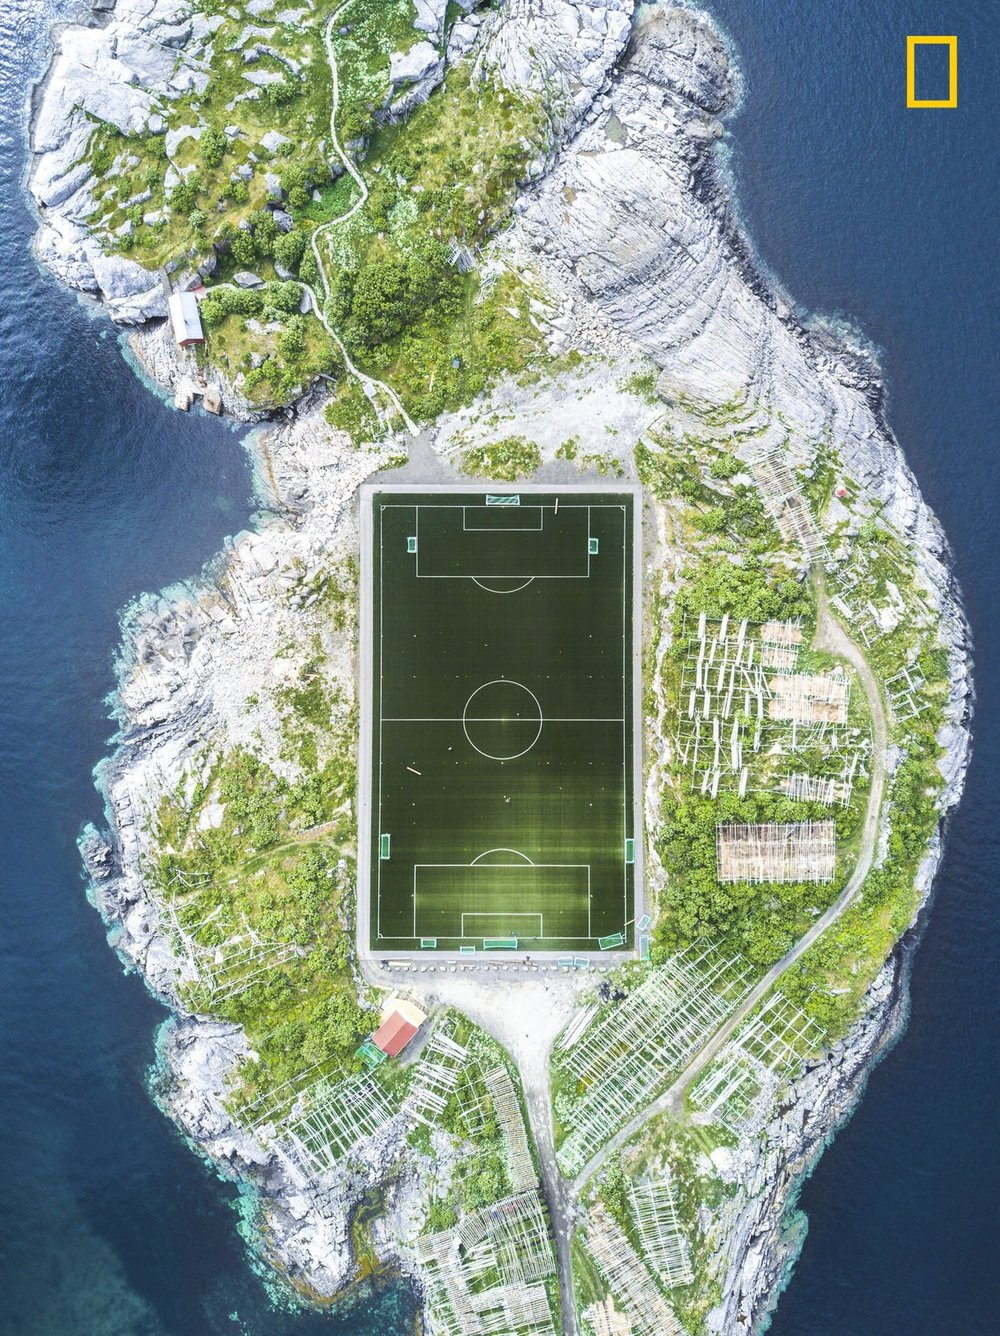 "3rd Place. Photo and caption by Misha De-Stroyev/ National Geographic Travel Photographer of the Year. Henningsvær Football Field. ""This football field in Henningsvær in the Lofoten Islands is considered one of the most amazing fields in Europe, and maybe even in the world. The photo was taken during a 10-day sailing trip in Norway in June 2017. We arrived at Henningsvær after a week of sailing through the cold and rainy weather. Upon our arrival, the weather cleared up. I was really lucky that the conditions were suitable for flying my drone, and I managed to capture this shot from a height of 120 meters."""